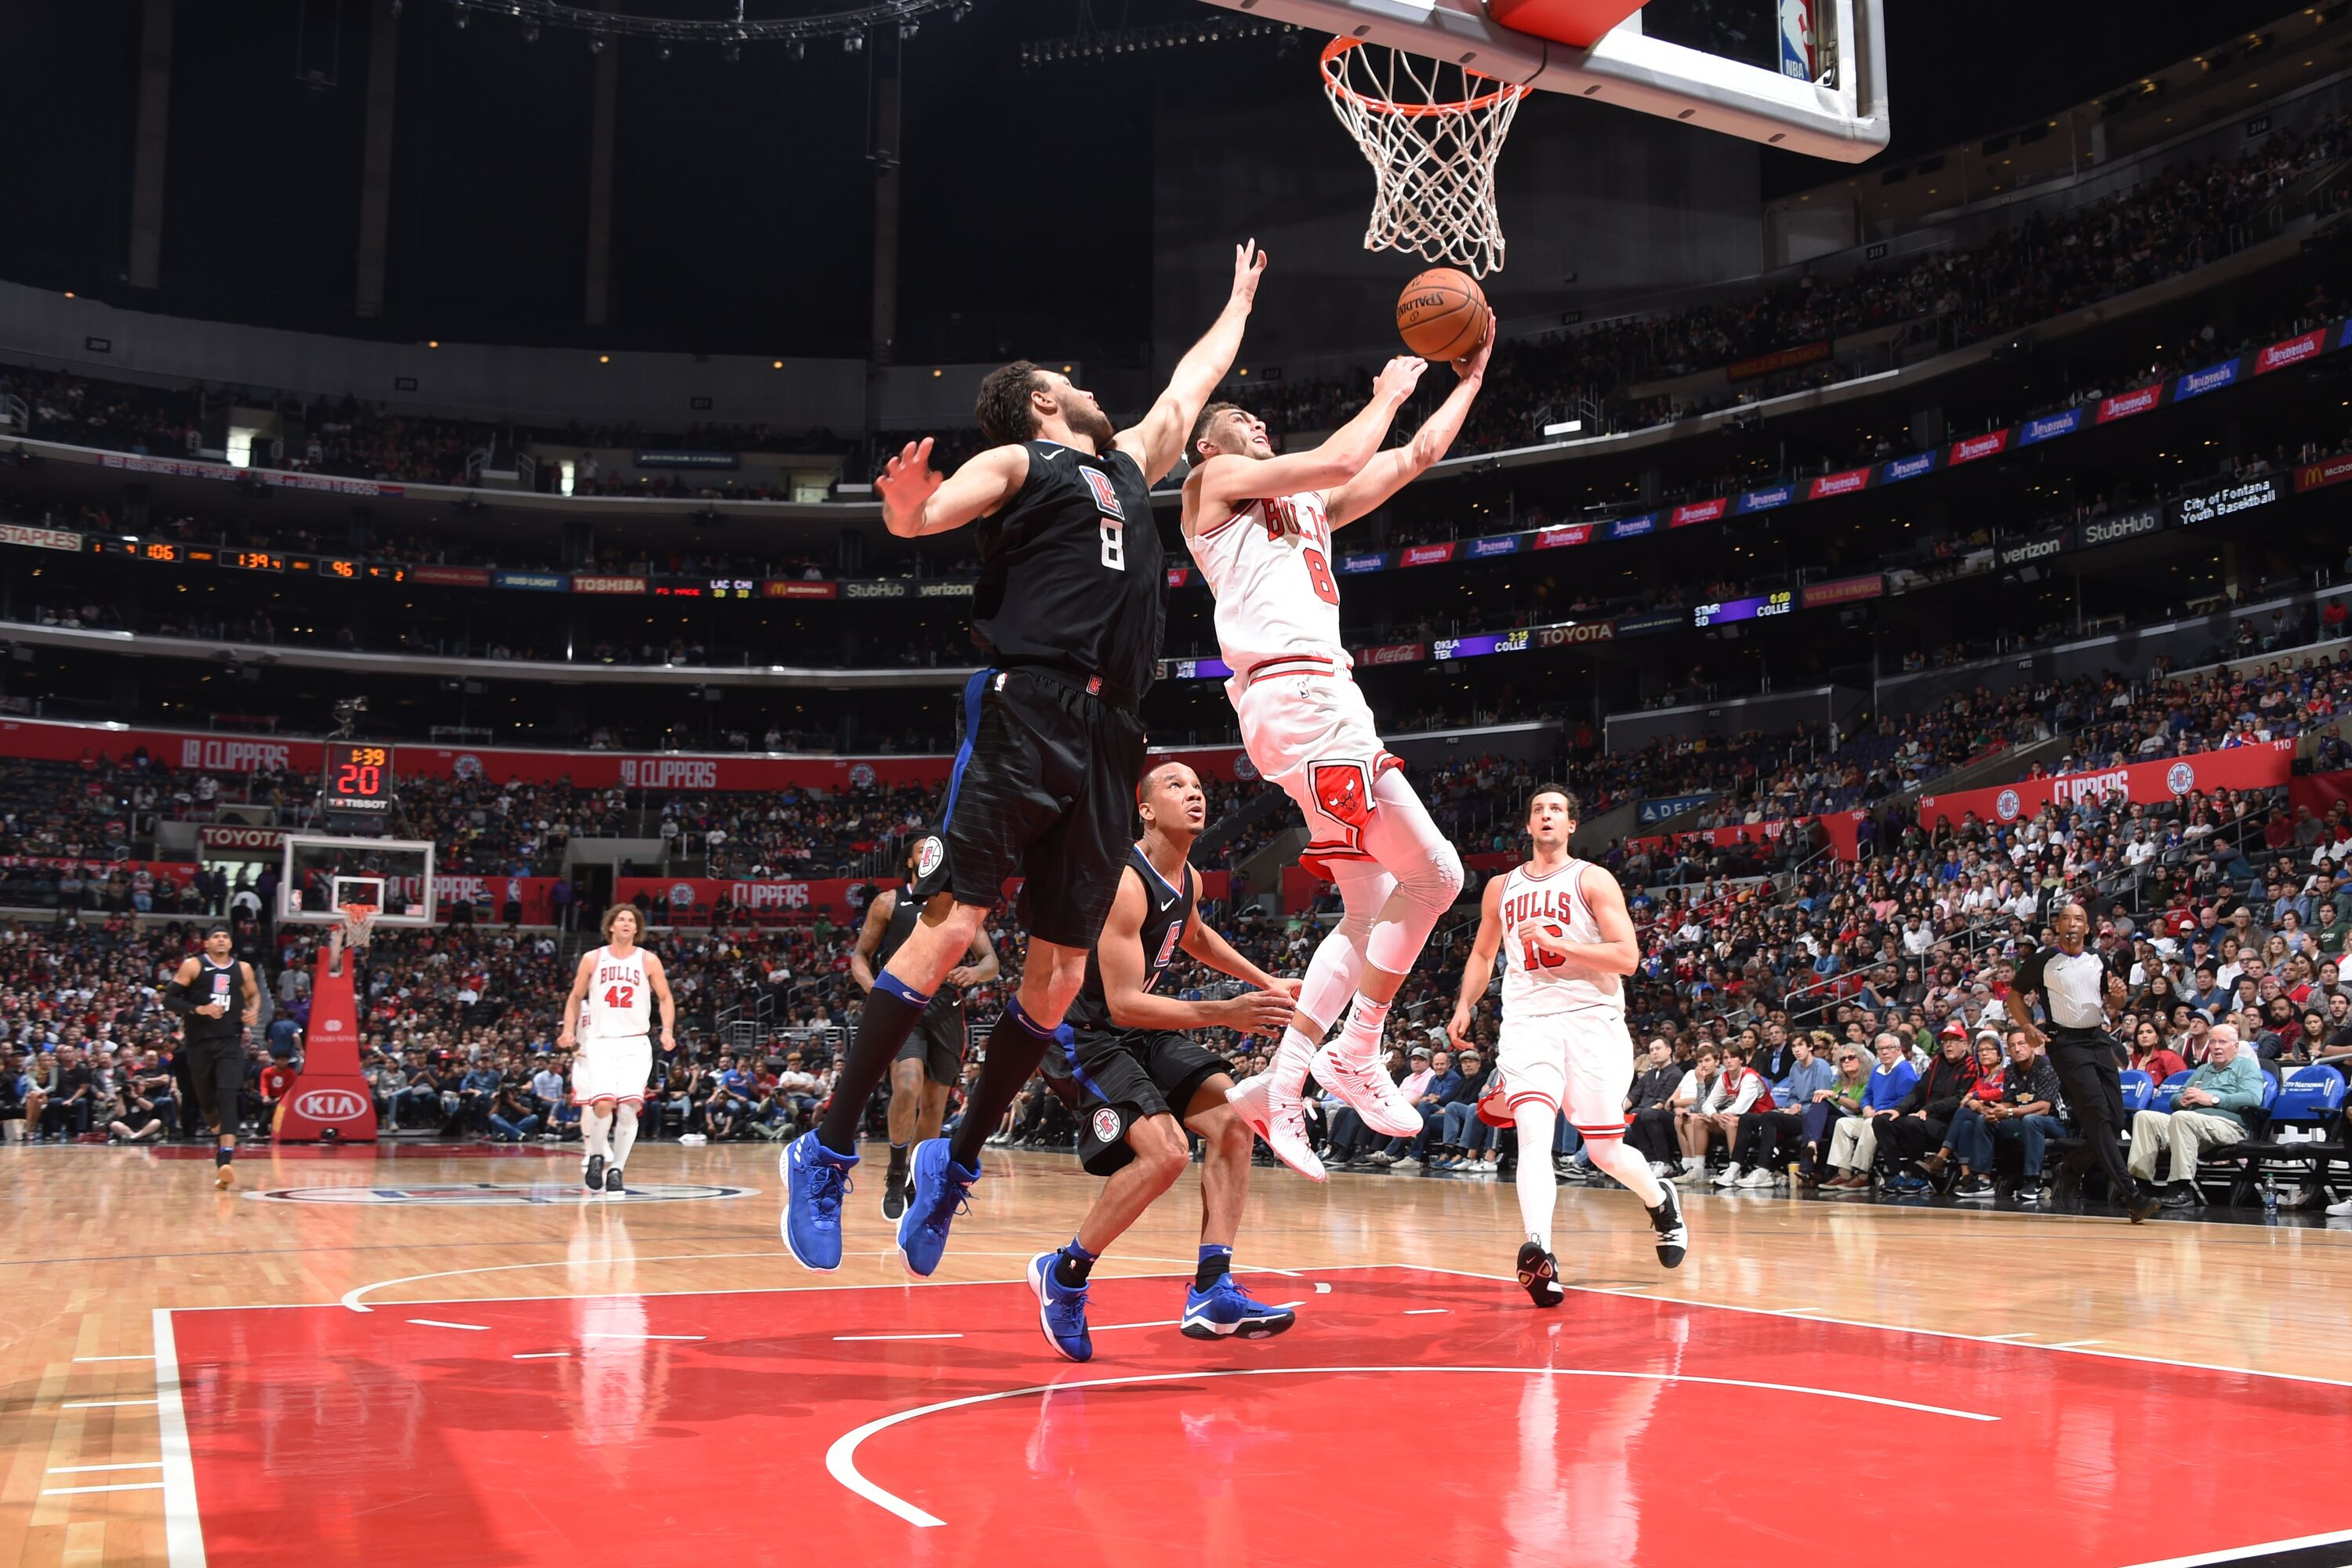 913871826-chicago-bulls-v-la-clippers.jpg